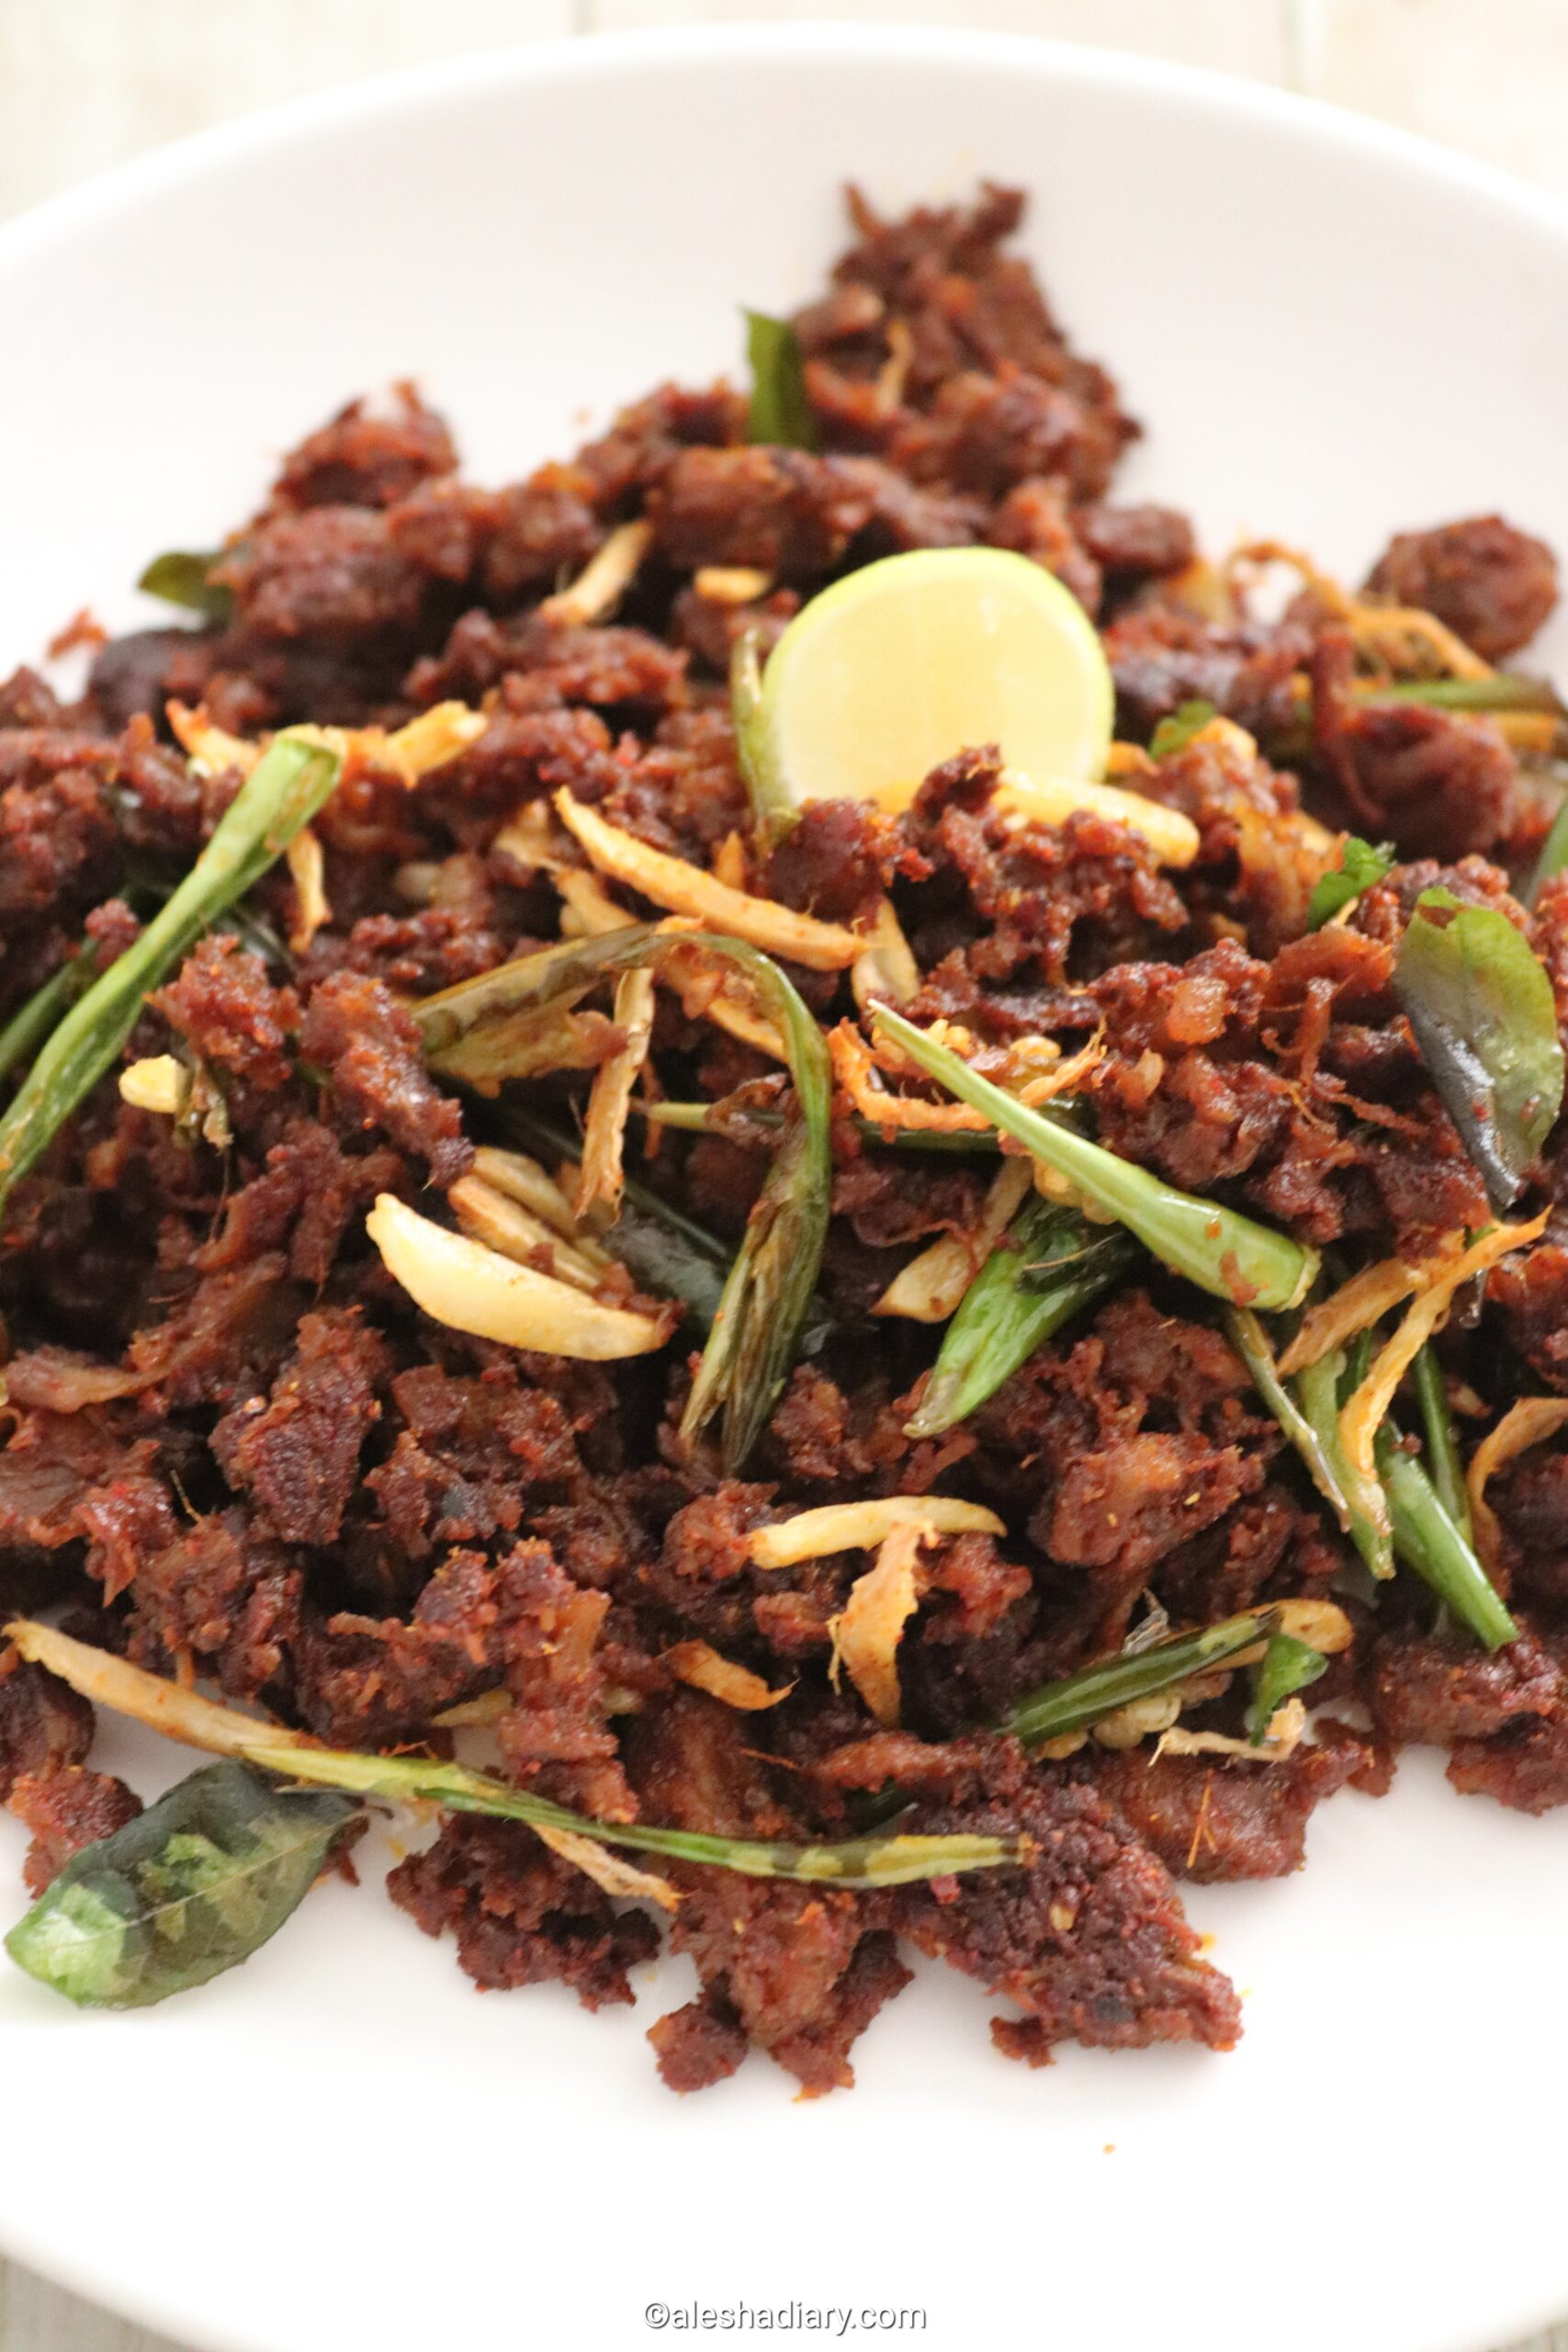 Mutton chilli – Crispy mutton chilli